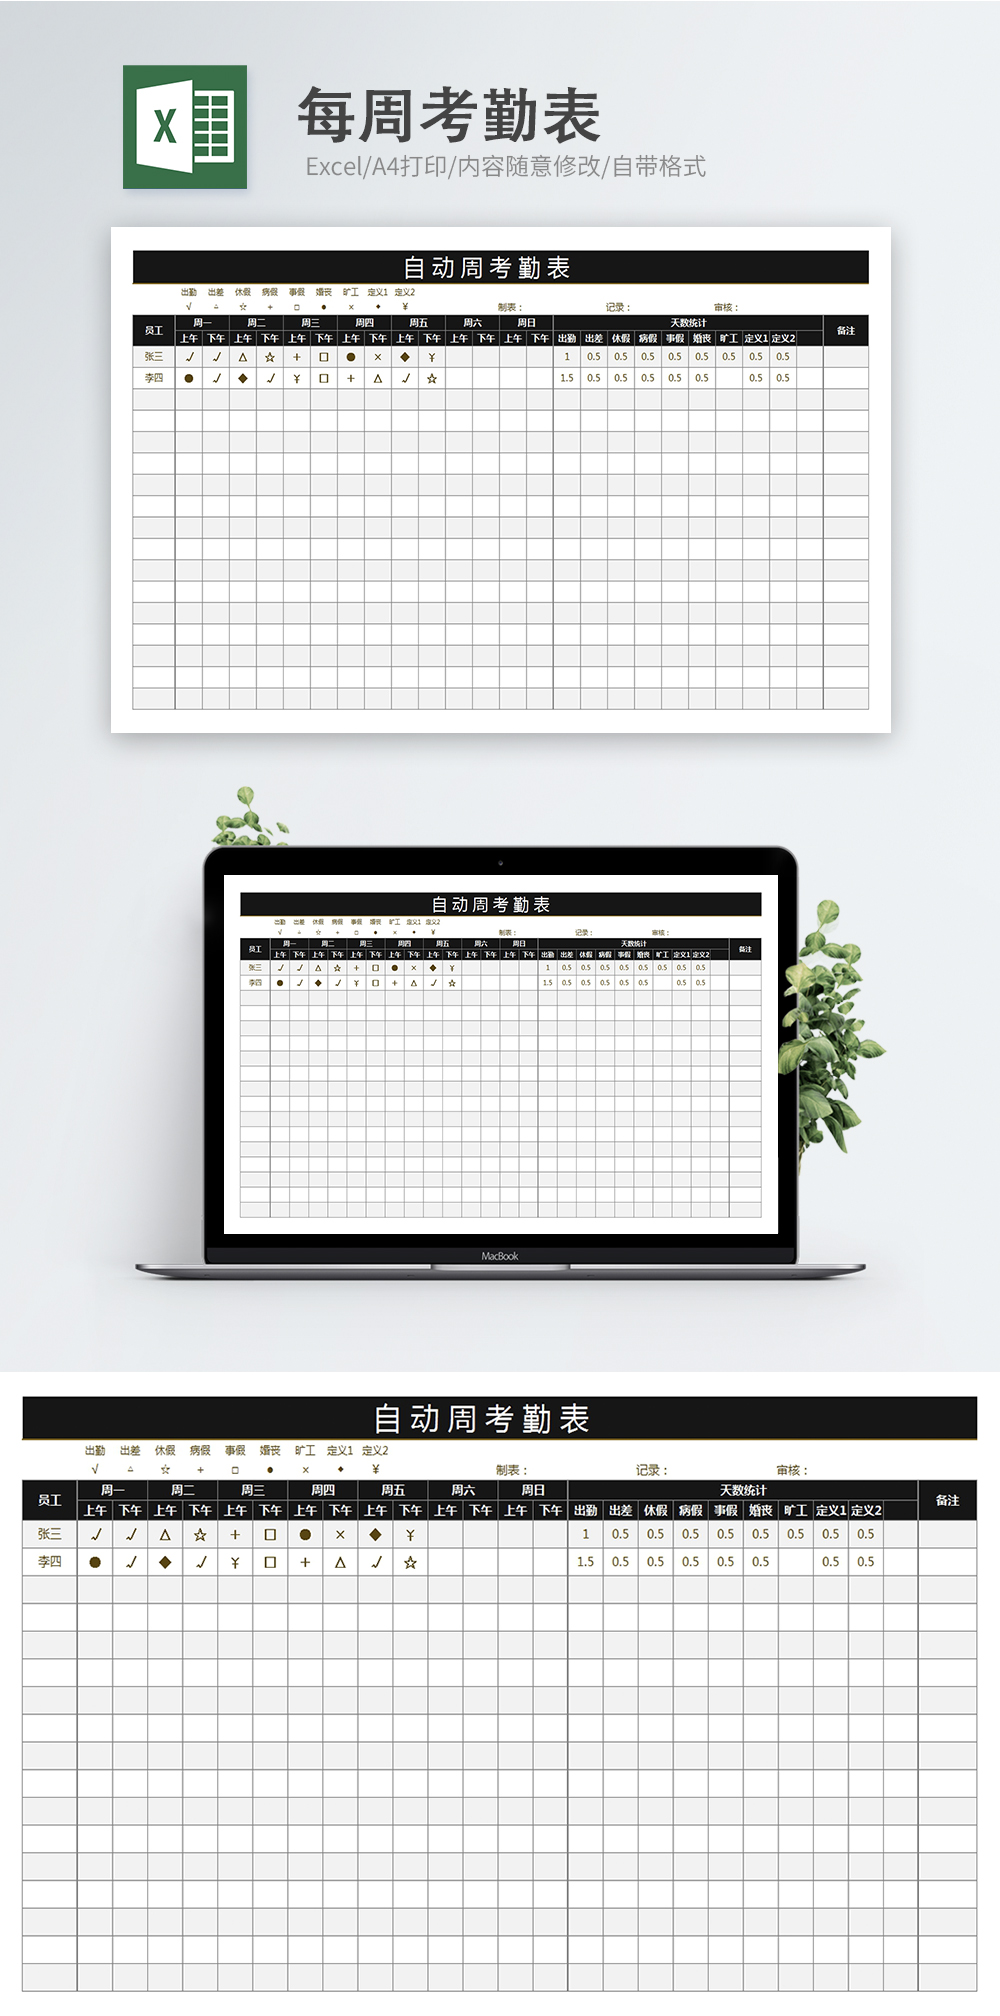 Weekly Attendance Sheet Excel Templete Free Download File